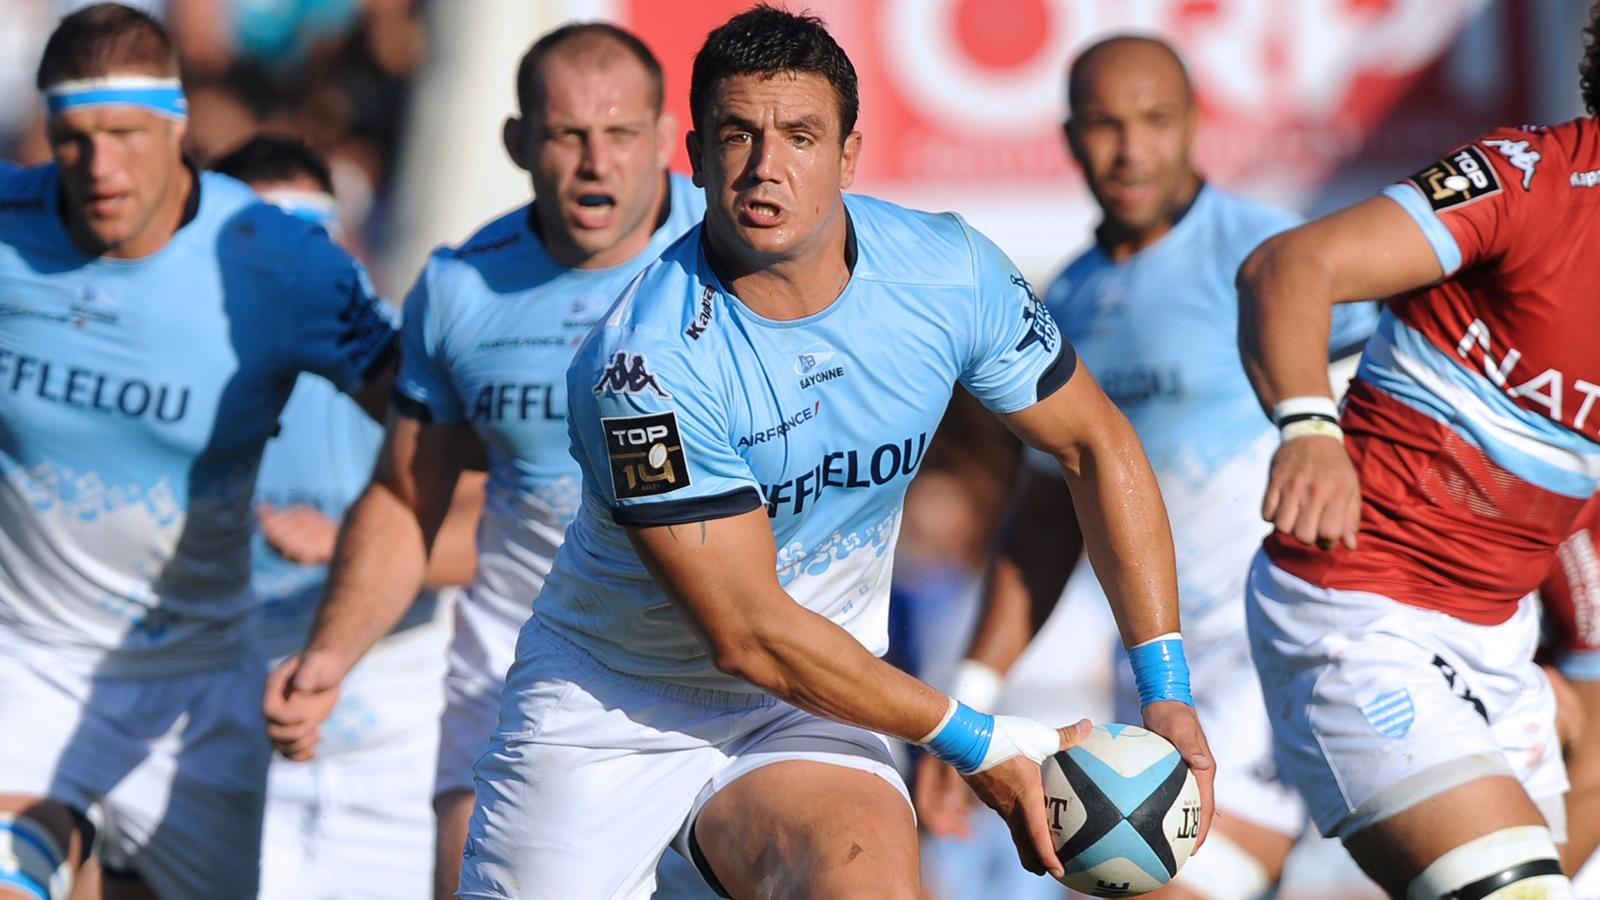 Rugby Top 14: Racing Metro 92 vs Bayonne en direct live streaming